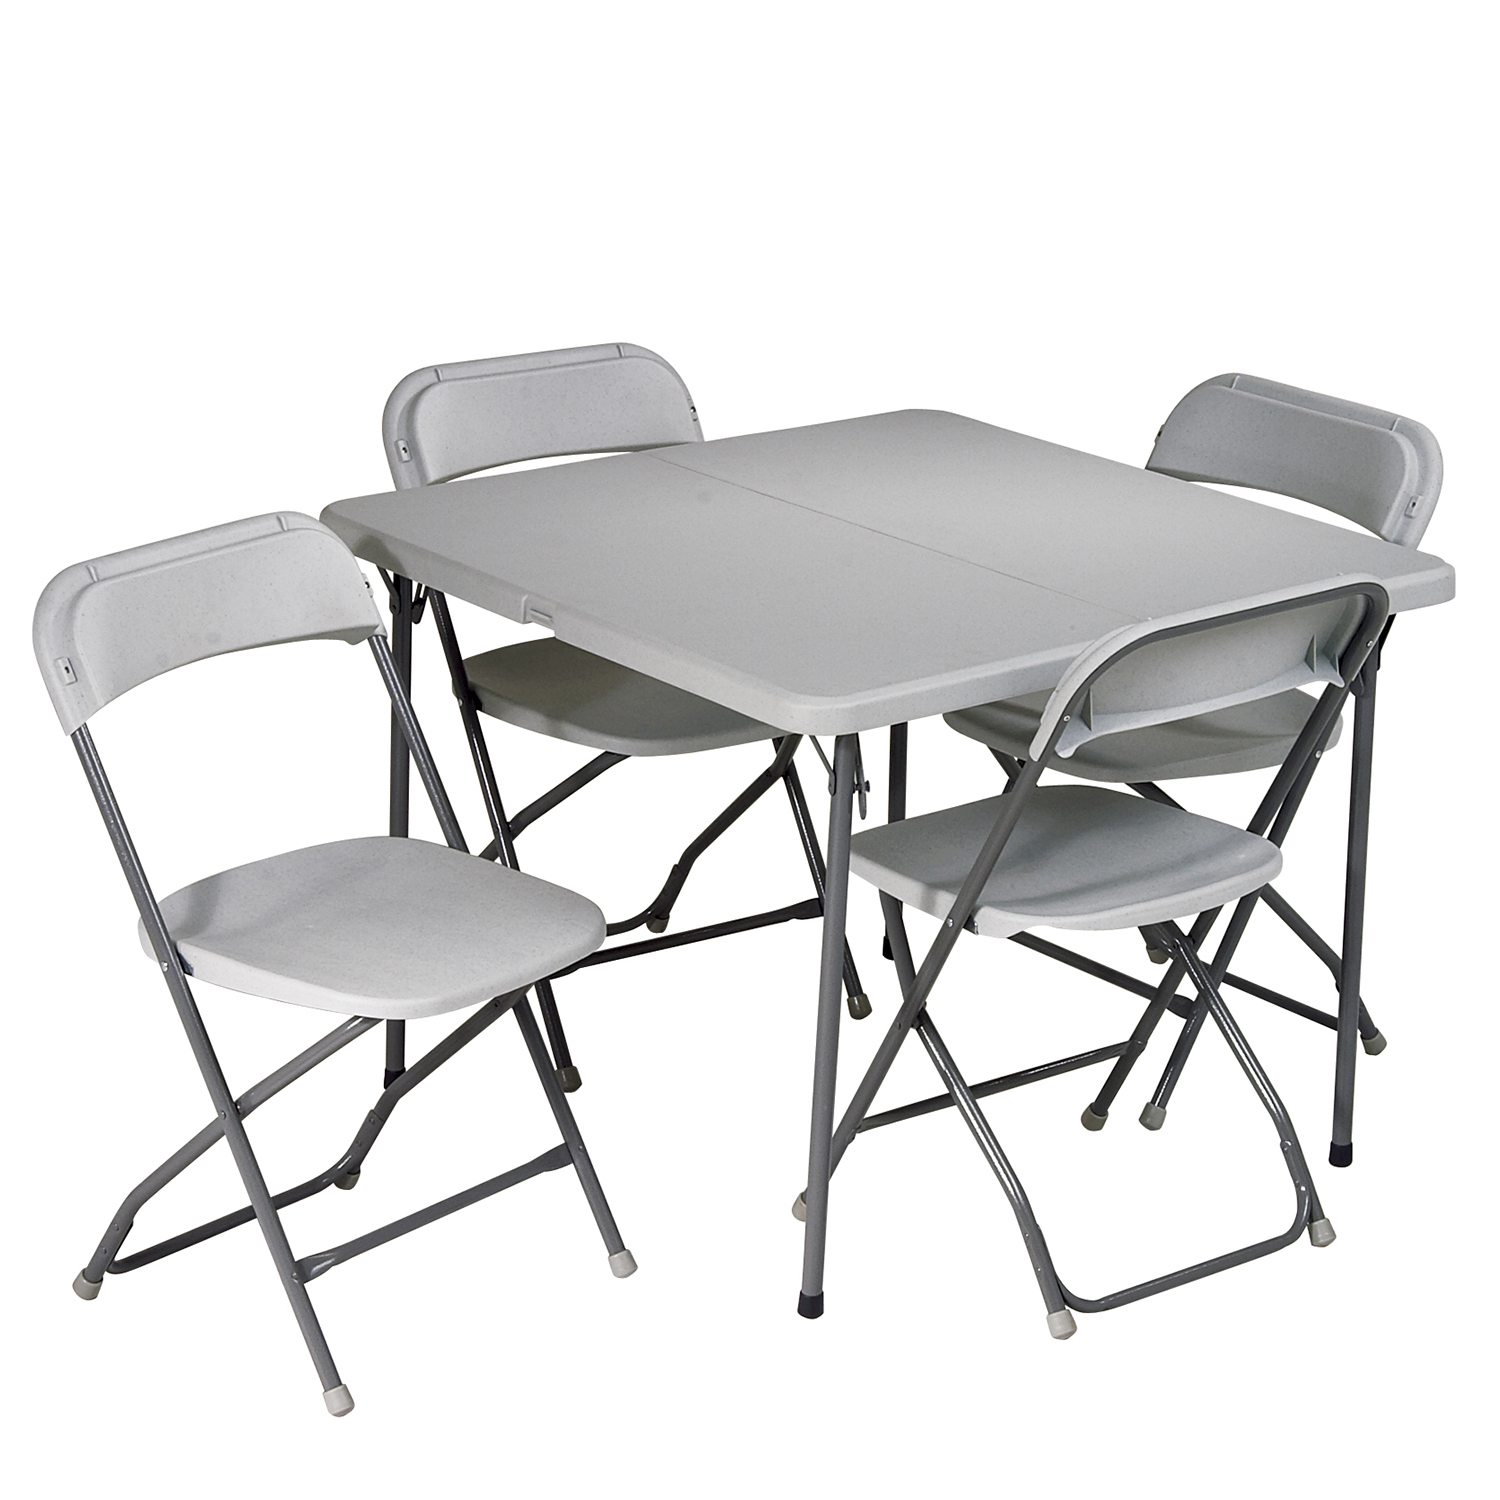 Gray Folding Square Table & Chairs 5-Piece Set